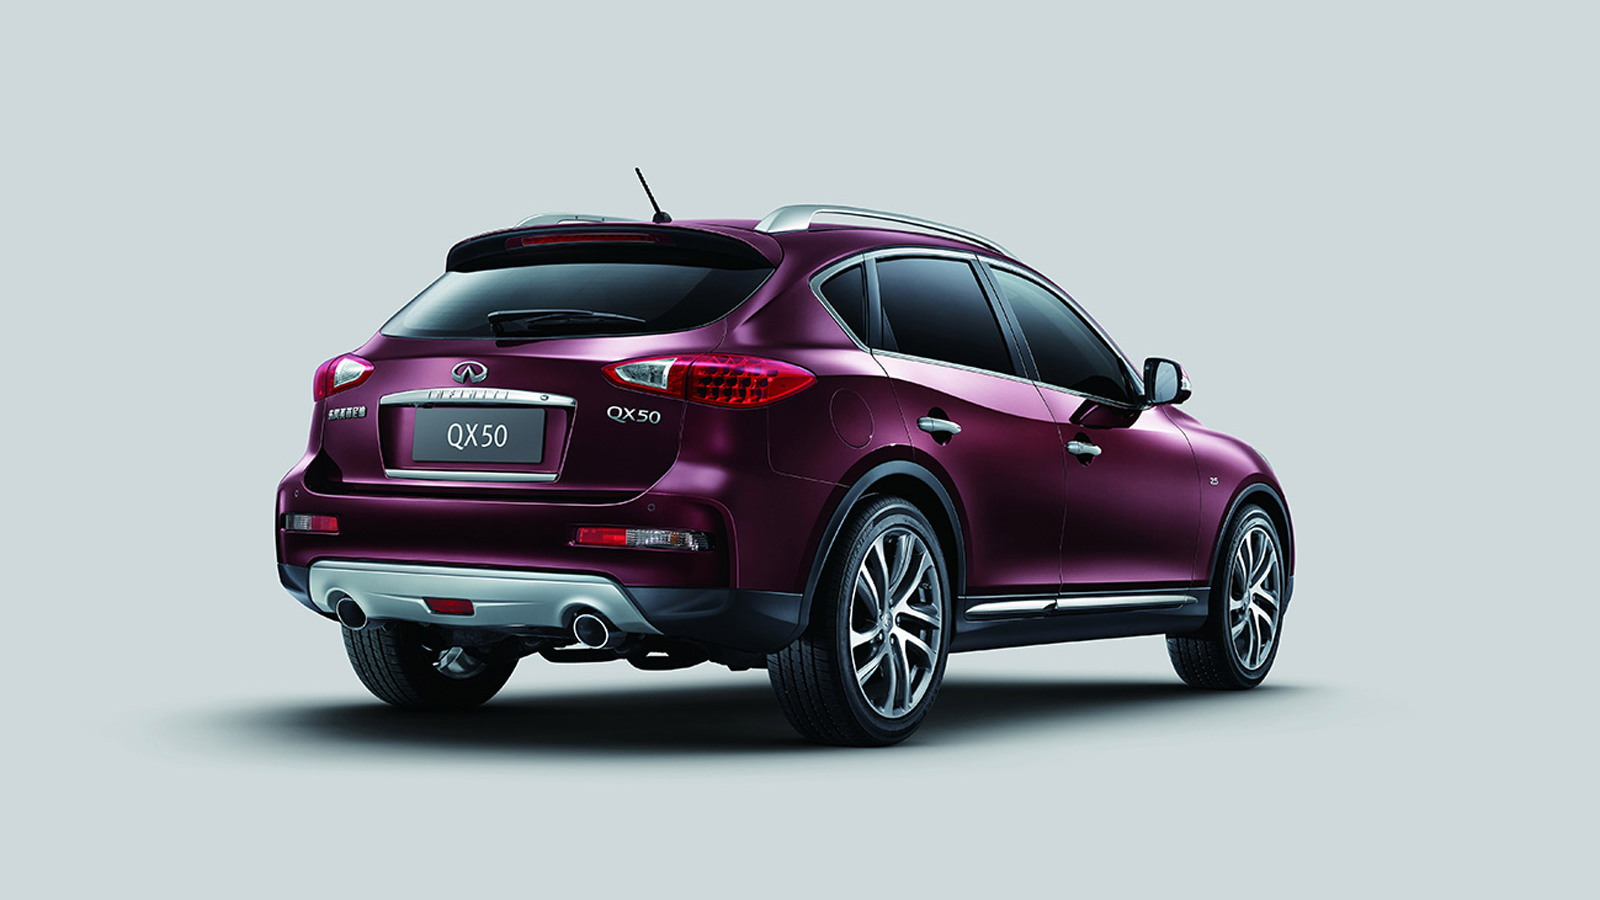 2015 Infiniti QX50 Long-Wheelbase (Chinese-spec)